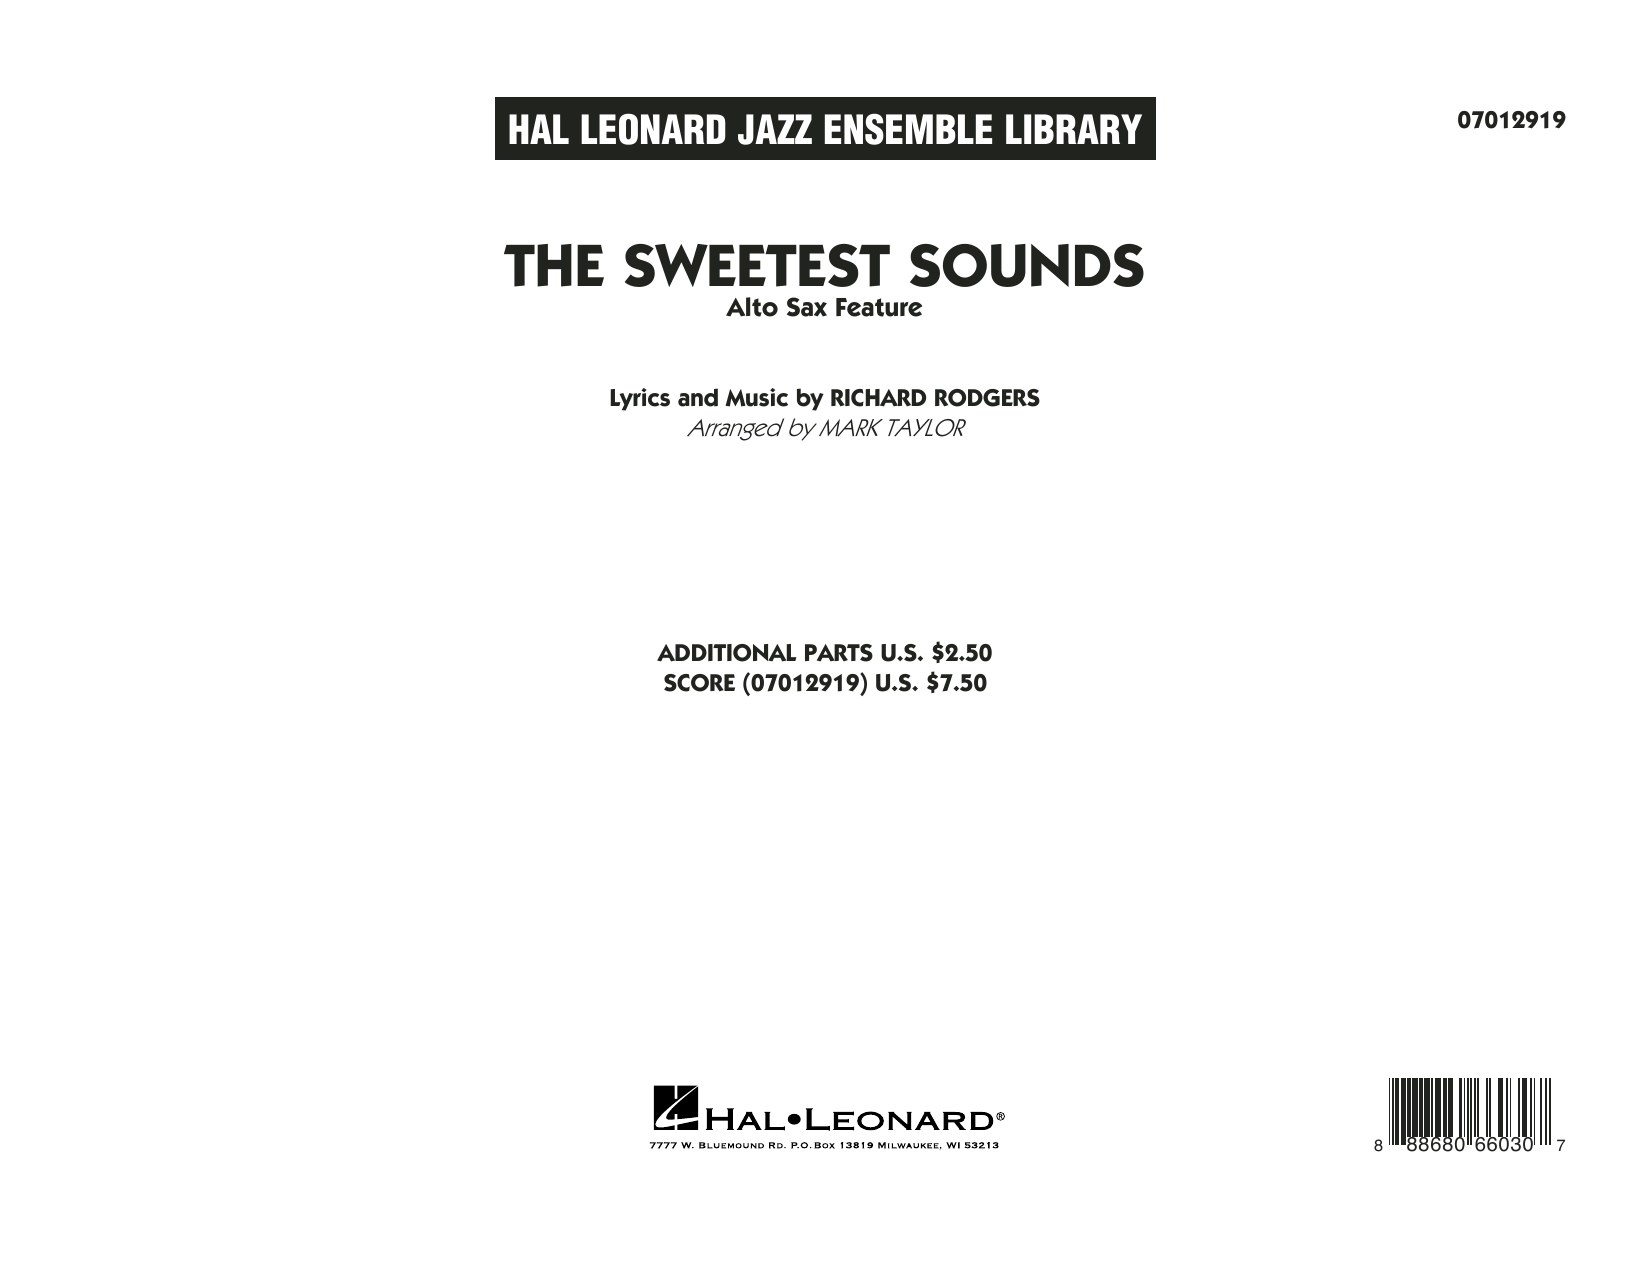 Mark Taylor The Sweetest Sounds (Alto Sax Feature) - Conductor Score (Full Score) sheet music notes and chords. Download Printable PDF.